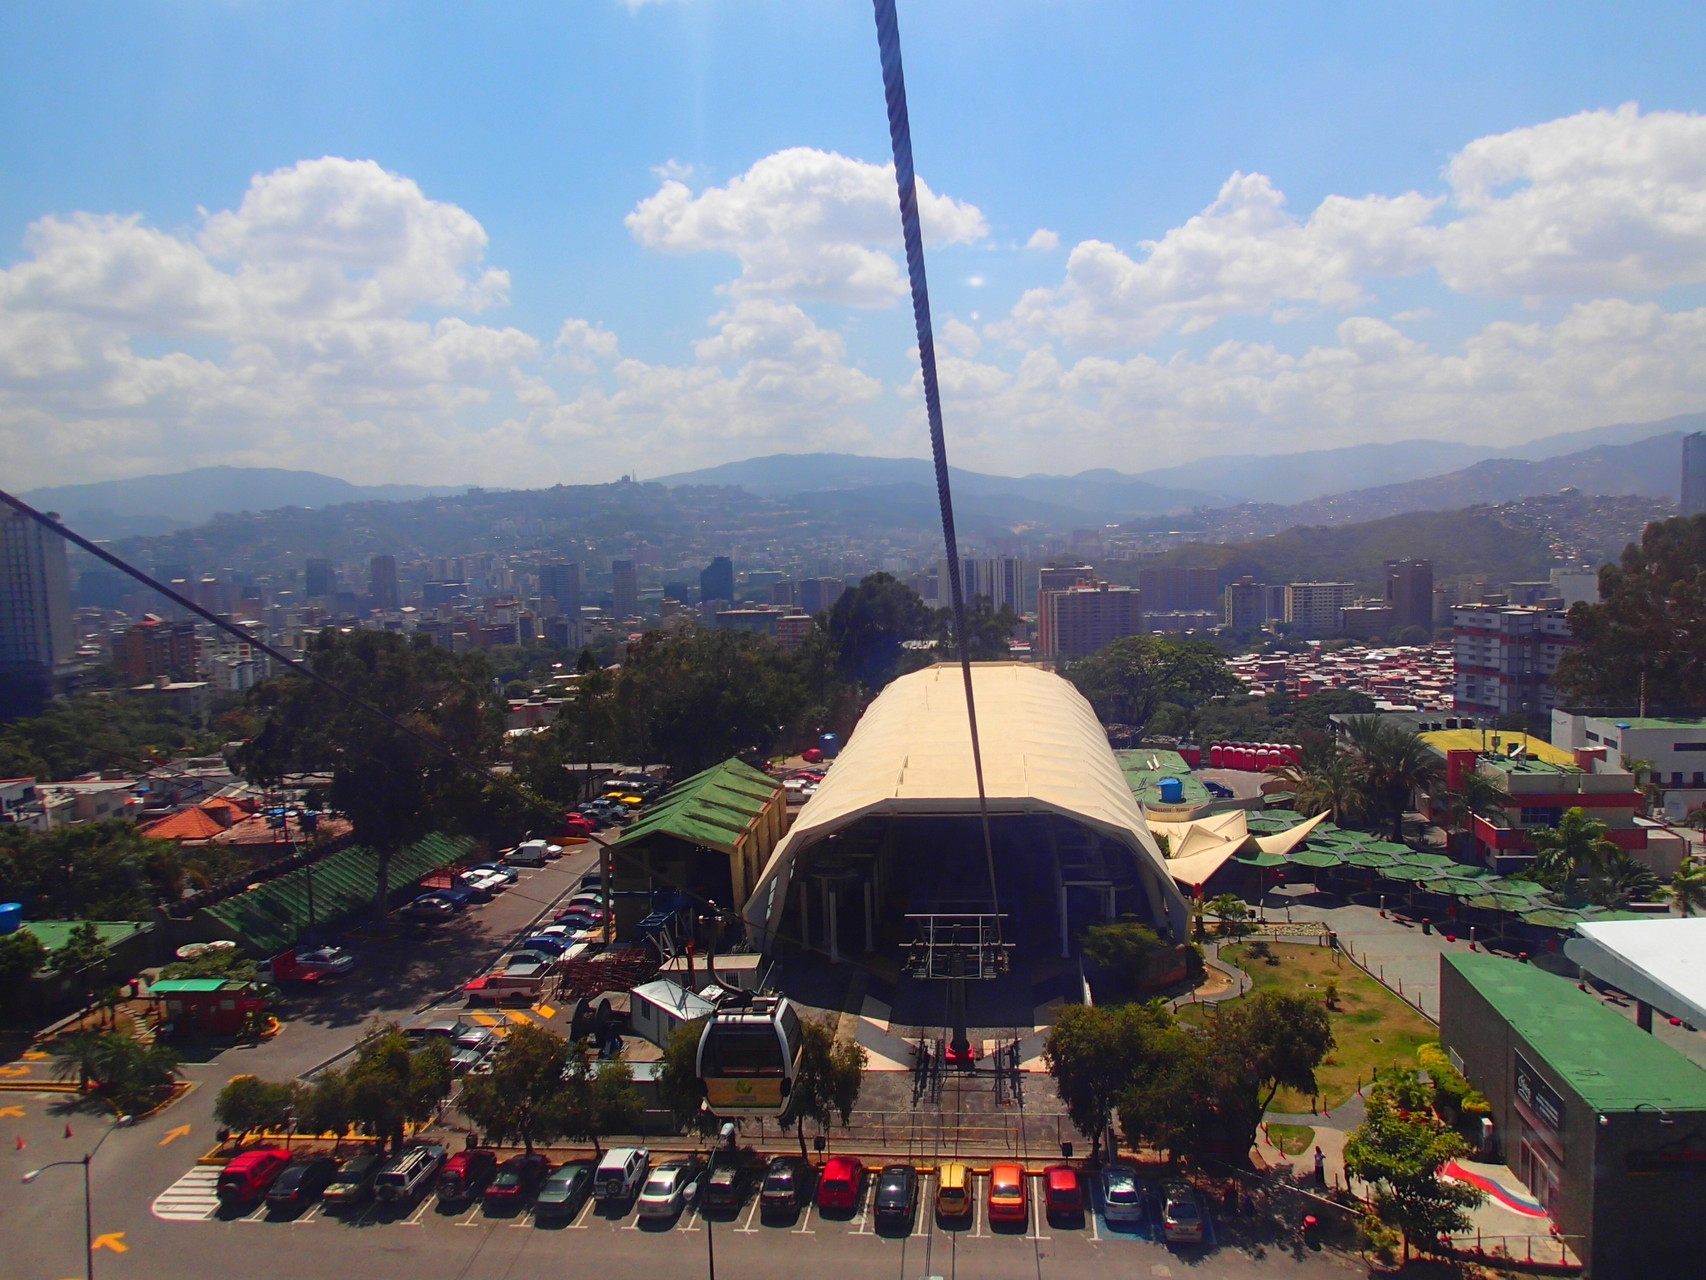 Taking the cable car (teleferico)